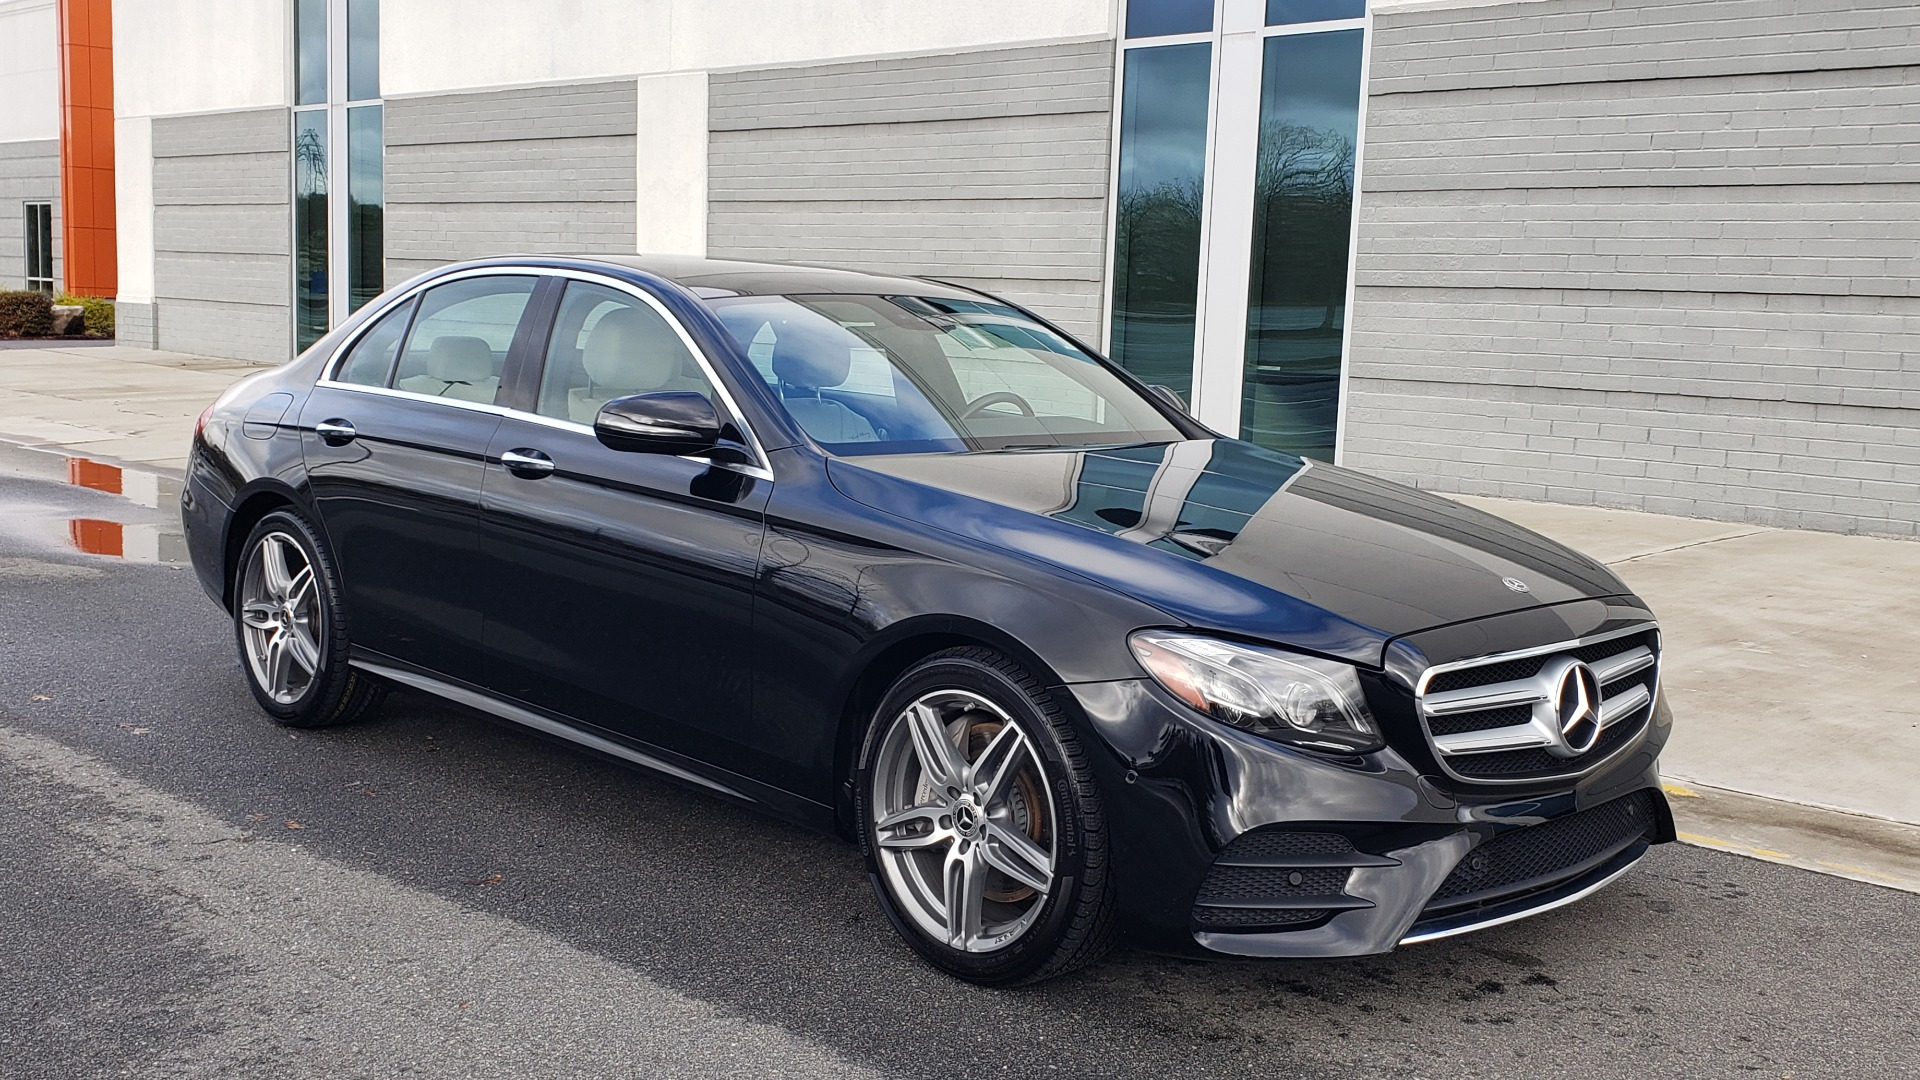 Used 2018 Mercedes-Benz E-CLASS E 300 PREM PKG 2 / NAV / PANO-ROOF / WARMTH & COMFORT PKG for sale $35,295 at Formula Imports in Charlotte NC 28227 2